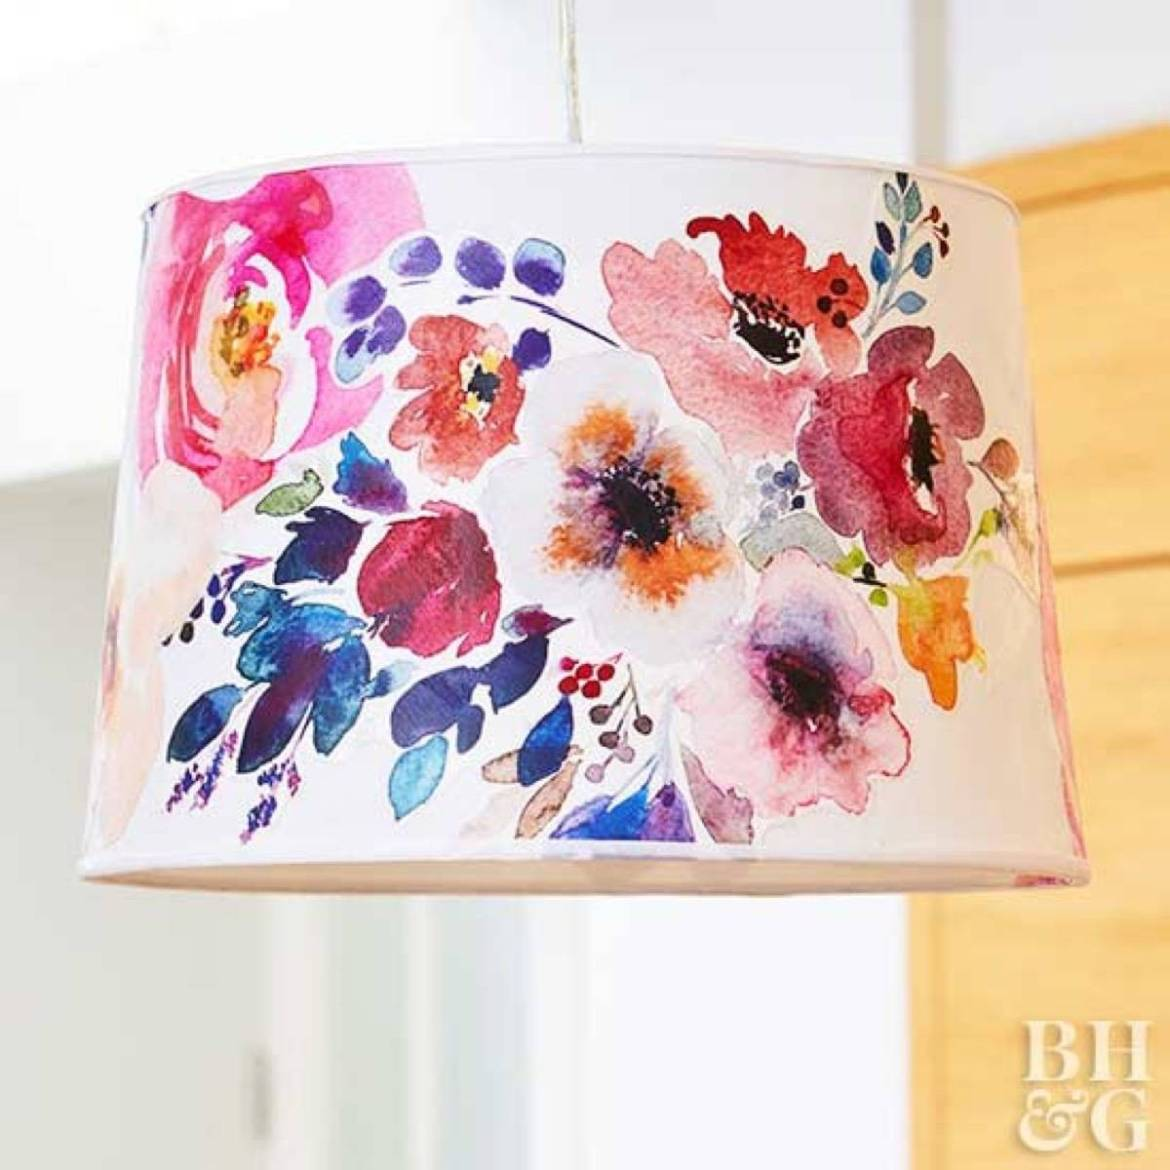 99 ways to use fabric to decorate your home   Decoupaged lampshade